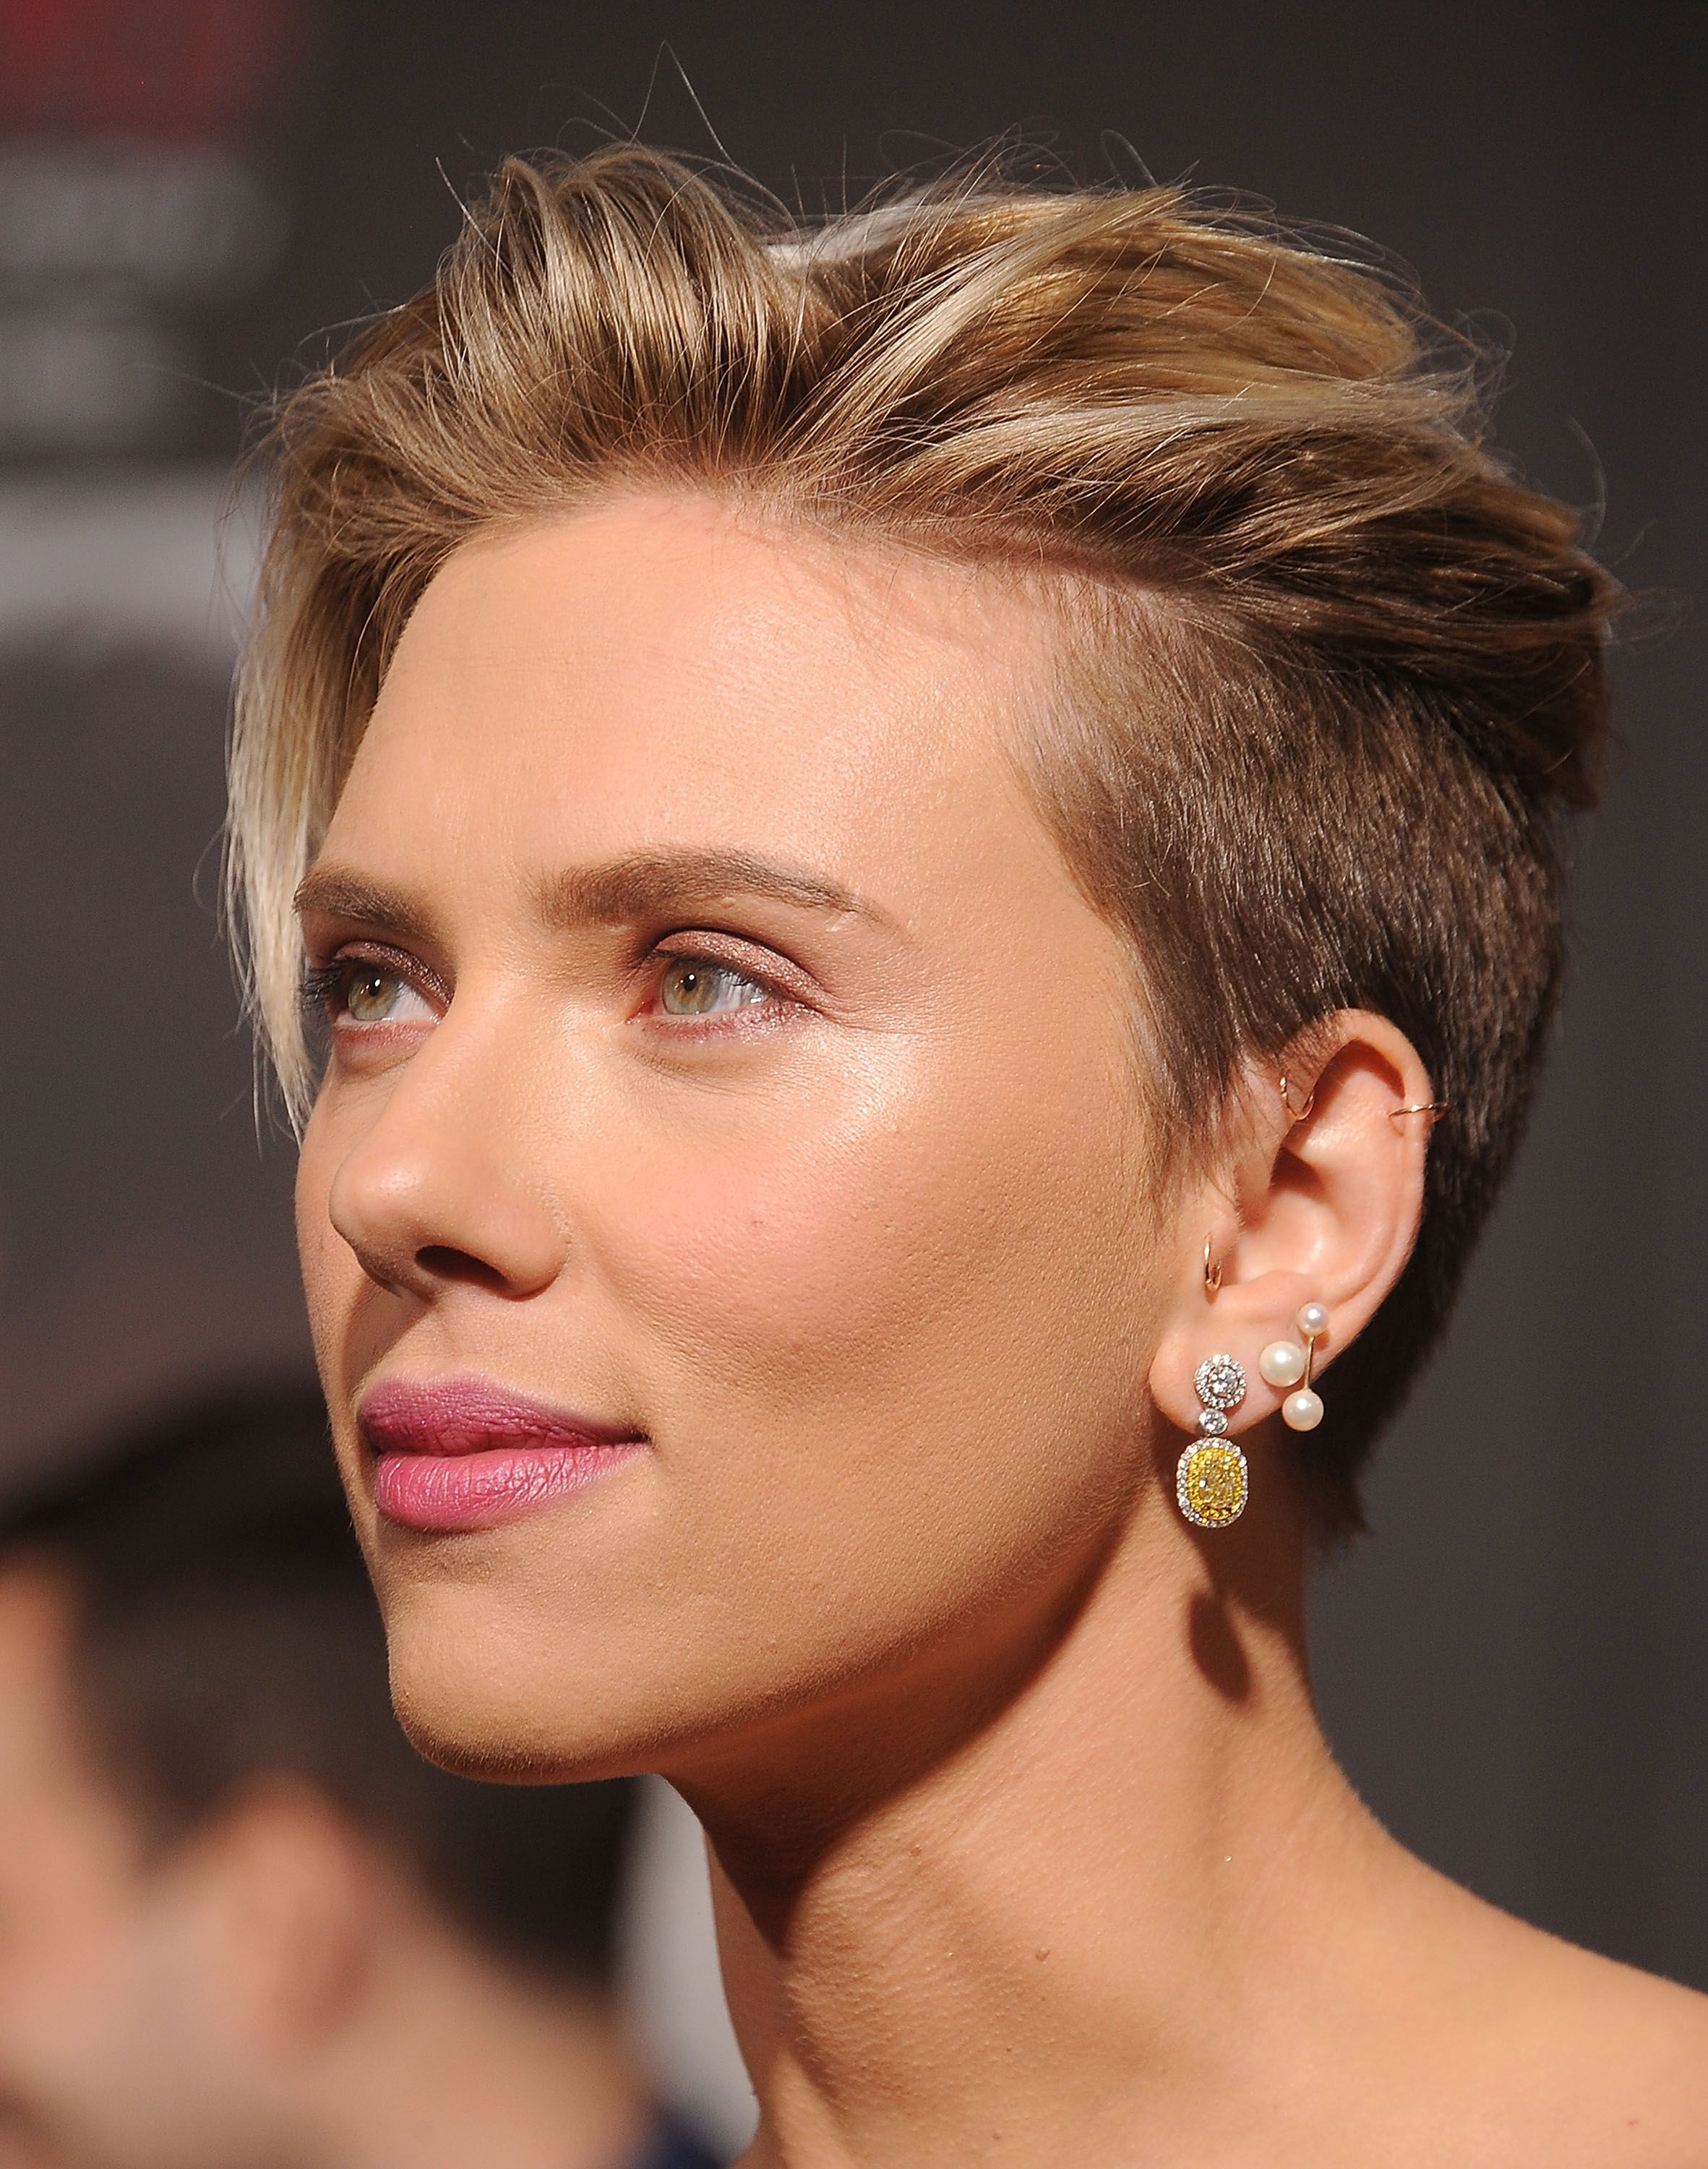 25 Famous Women Whose Hair Should Really Get More Attention Really Short Hair Short Hair Styles Thick Hair Styles